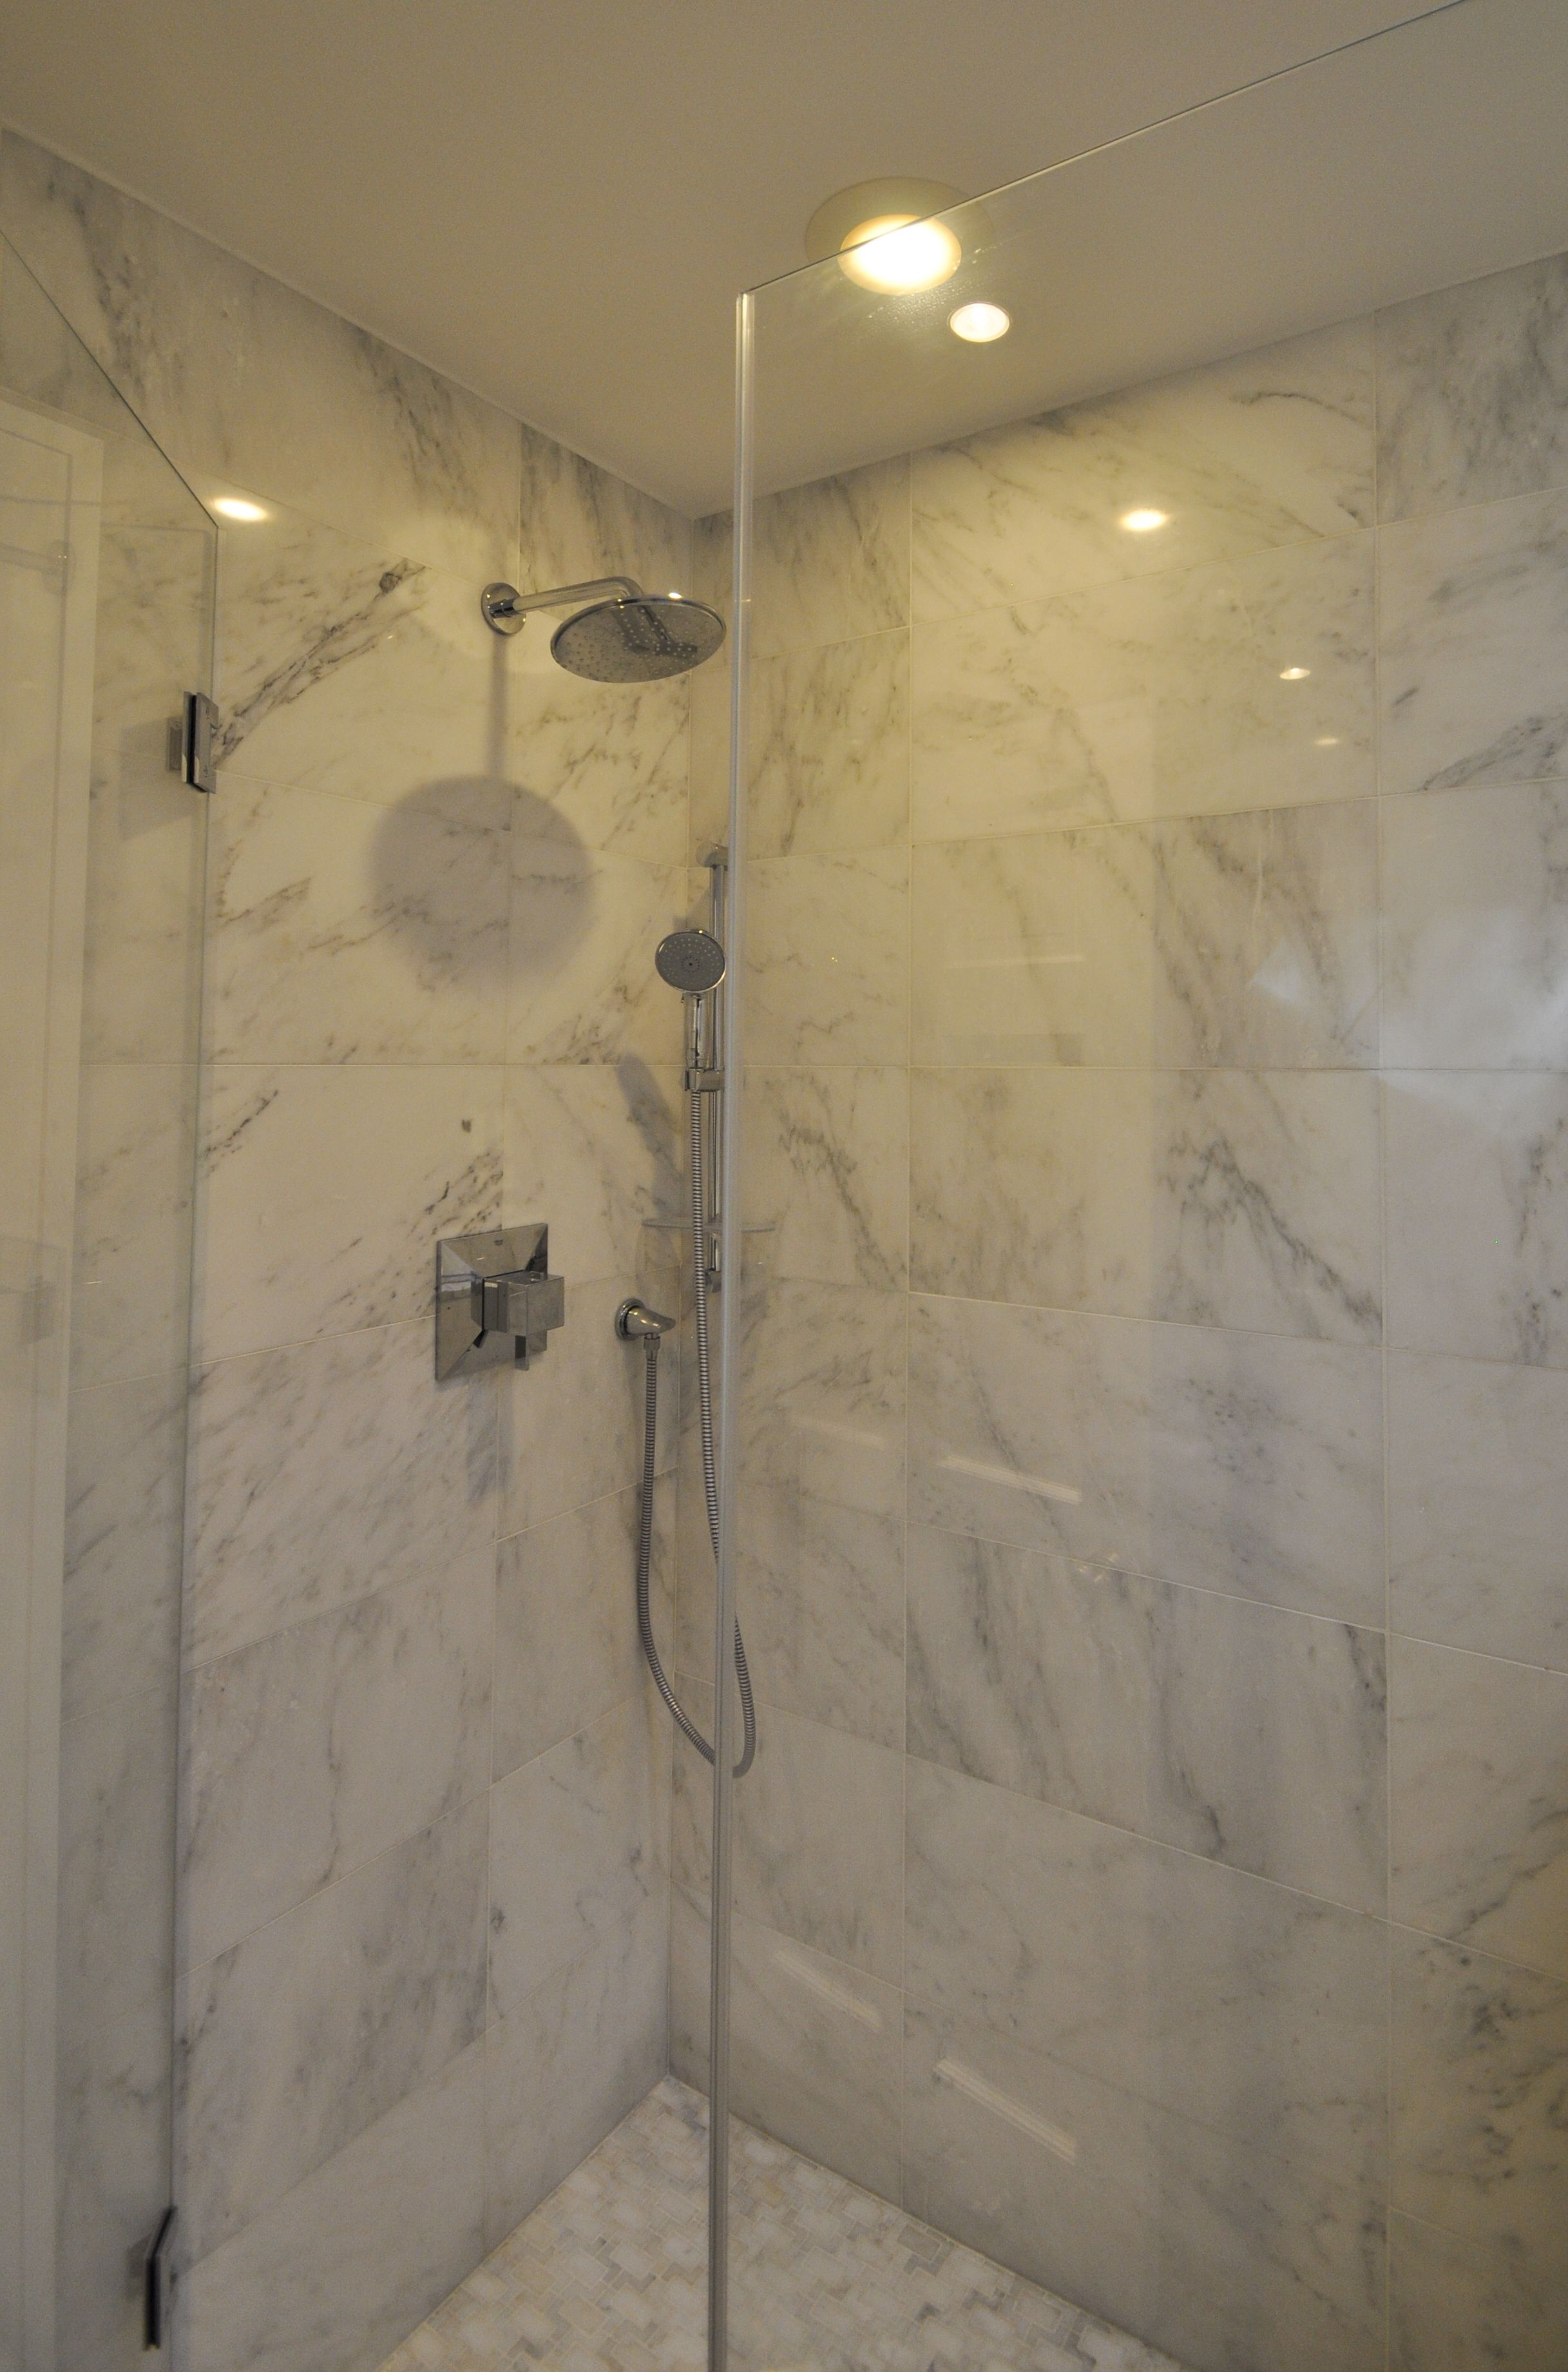 3421bd bathroom vanity ideas - Marble Stand Up Shower With Chrome Fixtures And Frameless Shower Doors